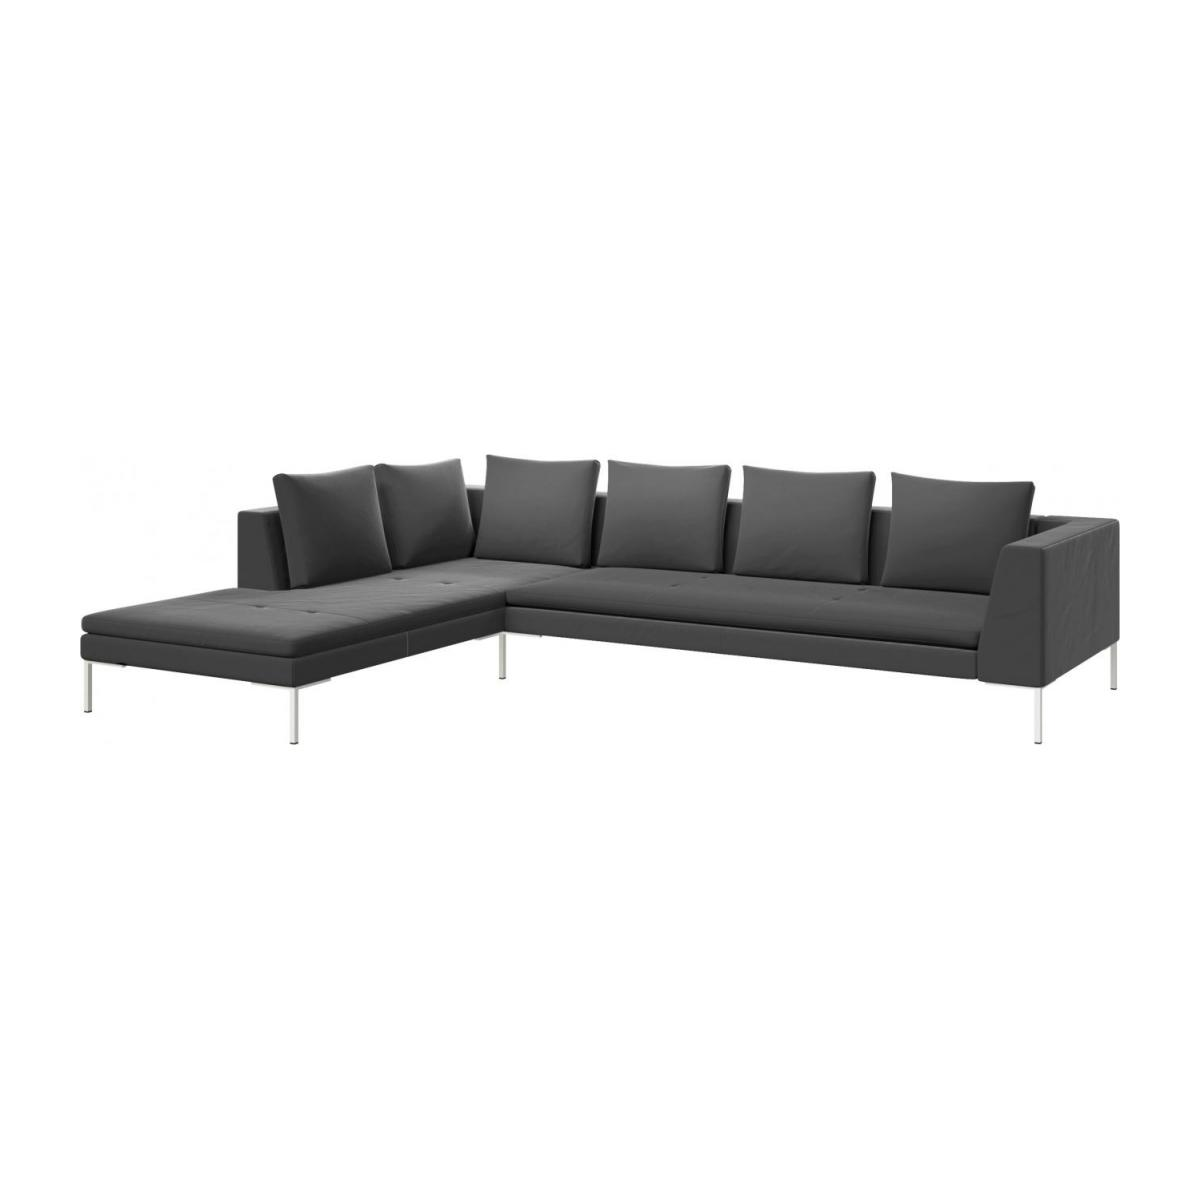 3 seater sofa with chaise longue on the left in Super Velvet fabric, silver grey  n°1